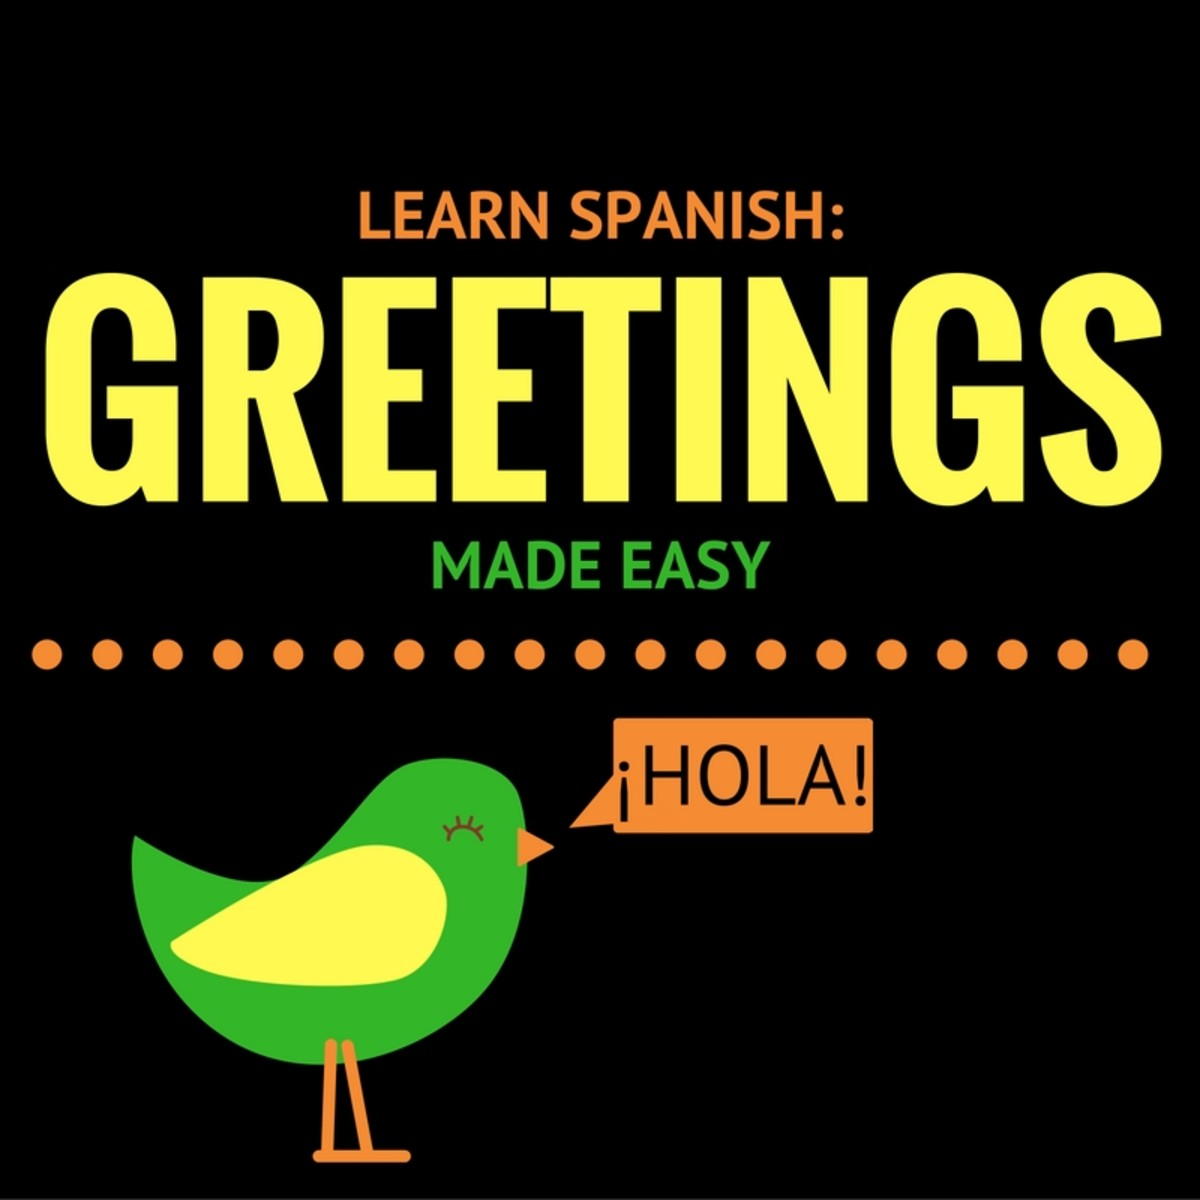 Learn Spanish Greetings Hubpages